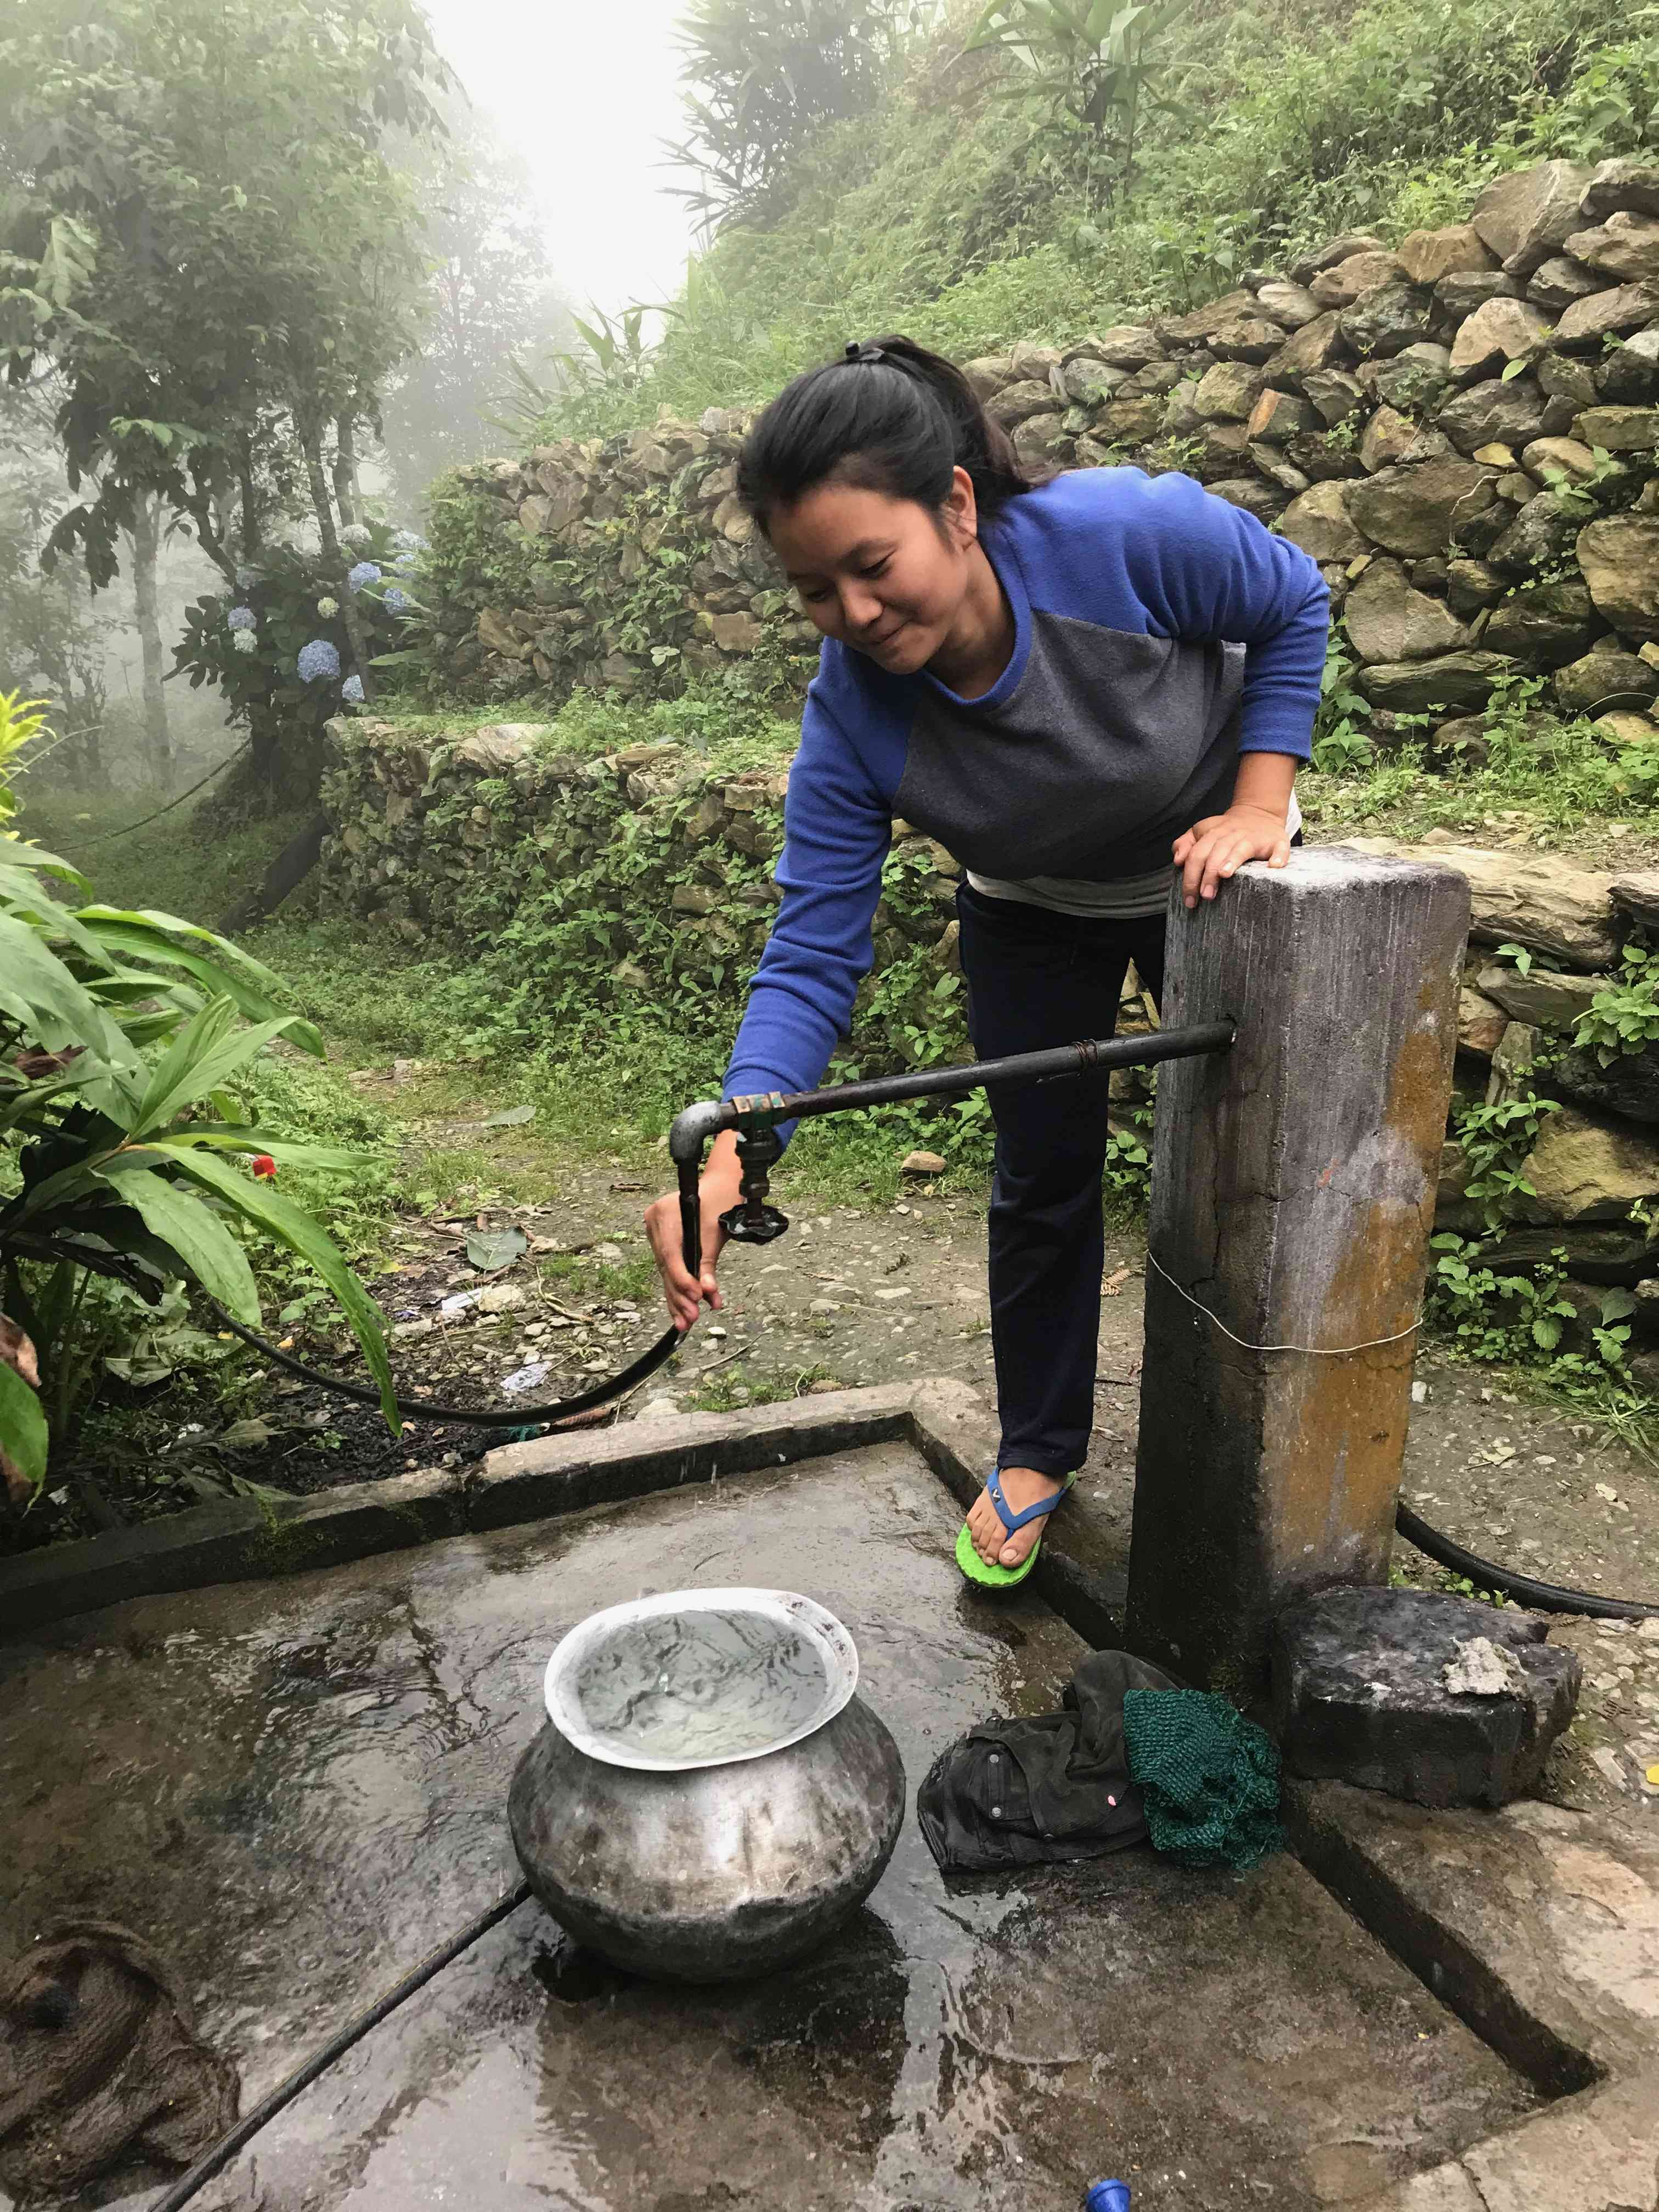 Manisha Mangar, a resident of Lower Gupti, says Dhara Vikas has increased the flow in the spring which supplies water to her village. They now get water throughout the year. Photo credit: Nidhi Jamwal